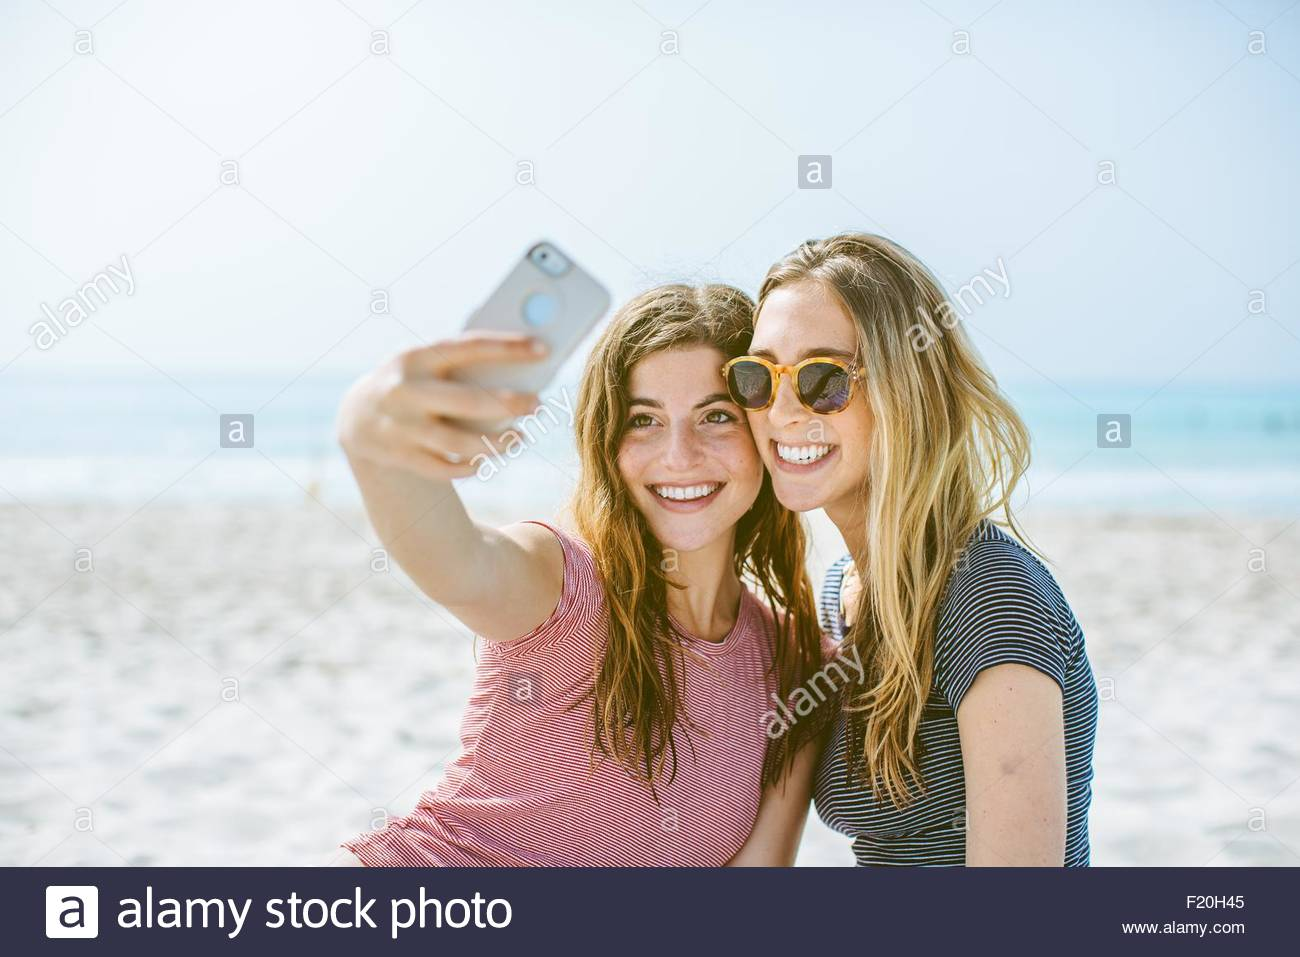 Two young female friends taking smartphone selfie on beach - Stock Image